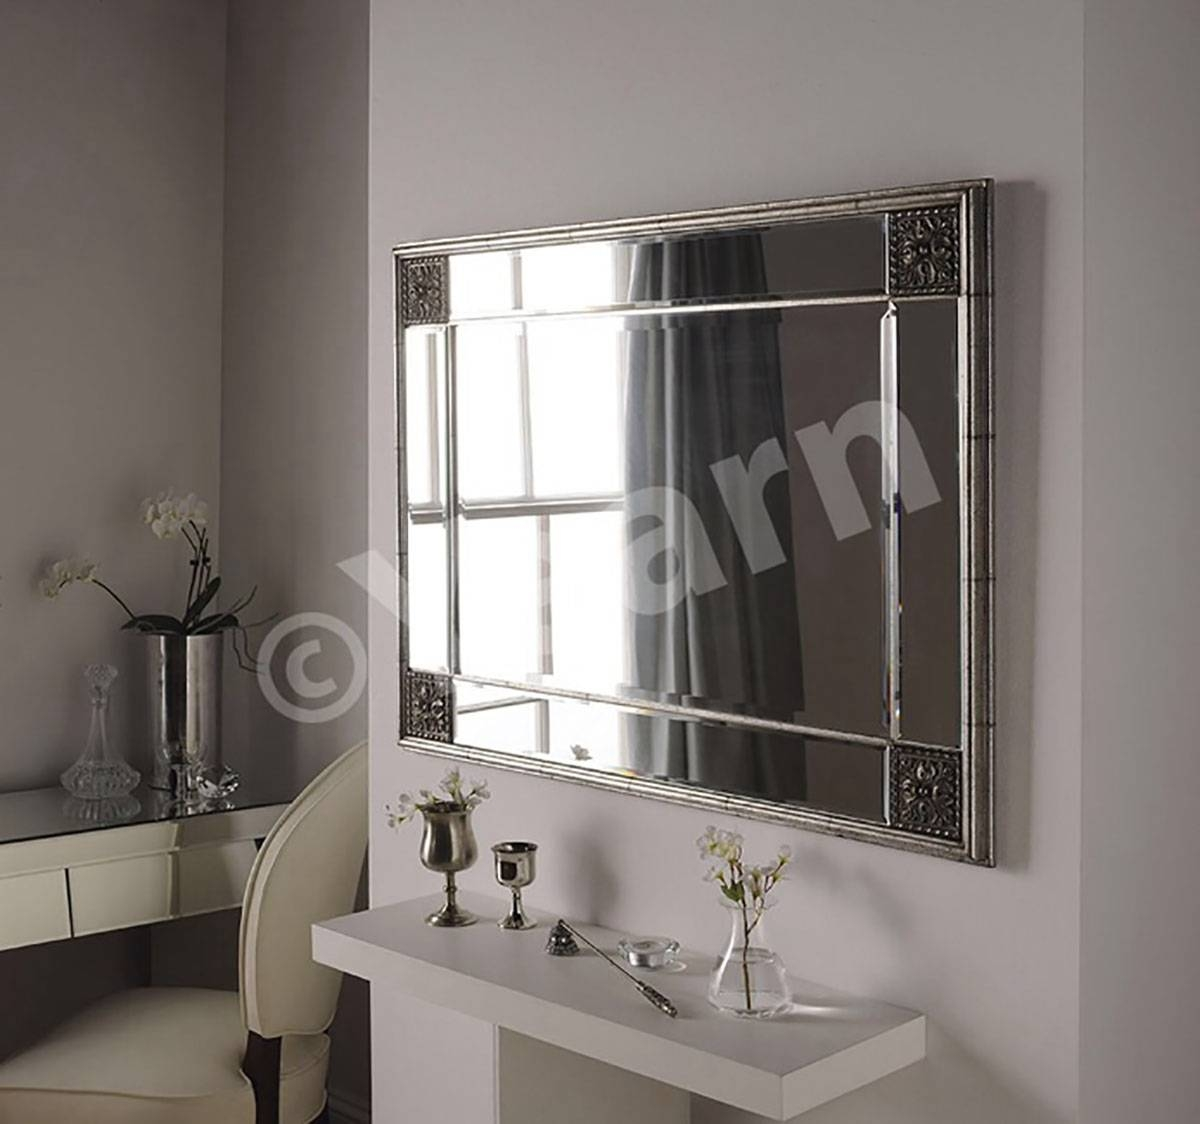 Elegance Contemporary Design Mirror – Mirror Elegance Throughout Contemporary Mirrors (View 13 of 25)